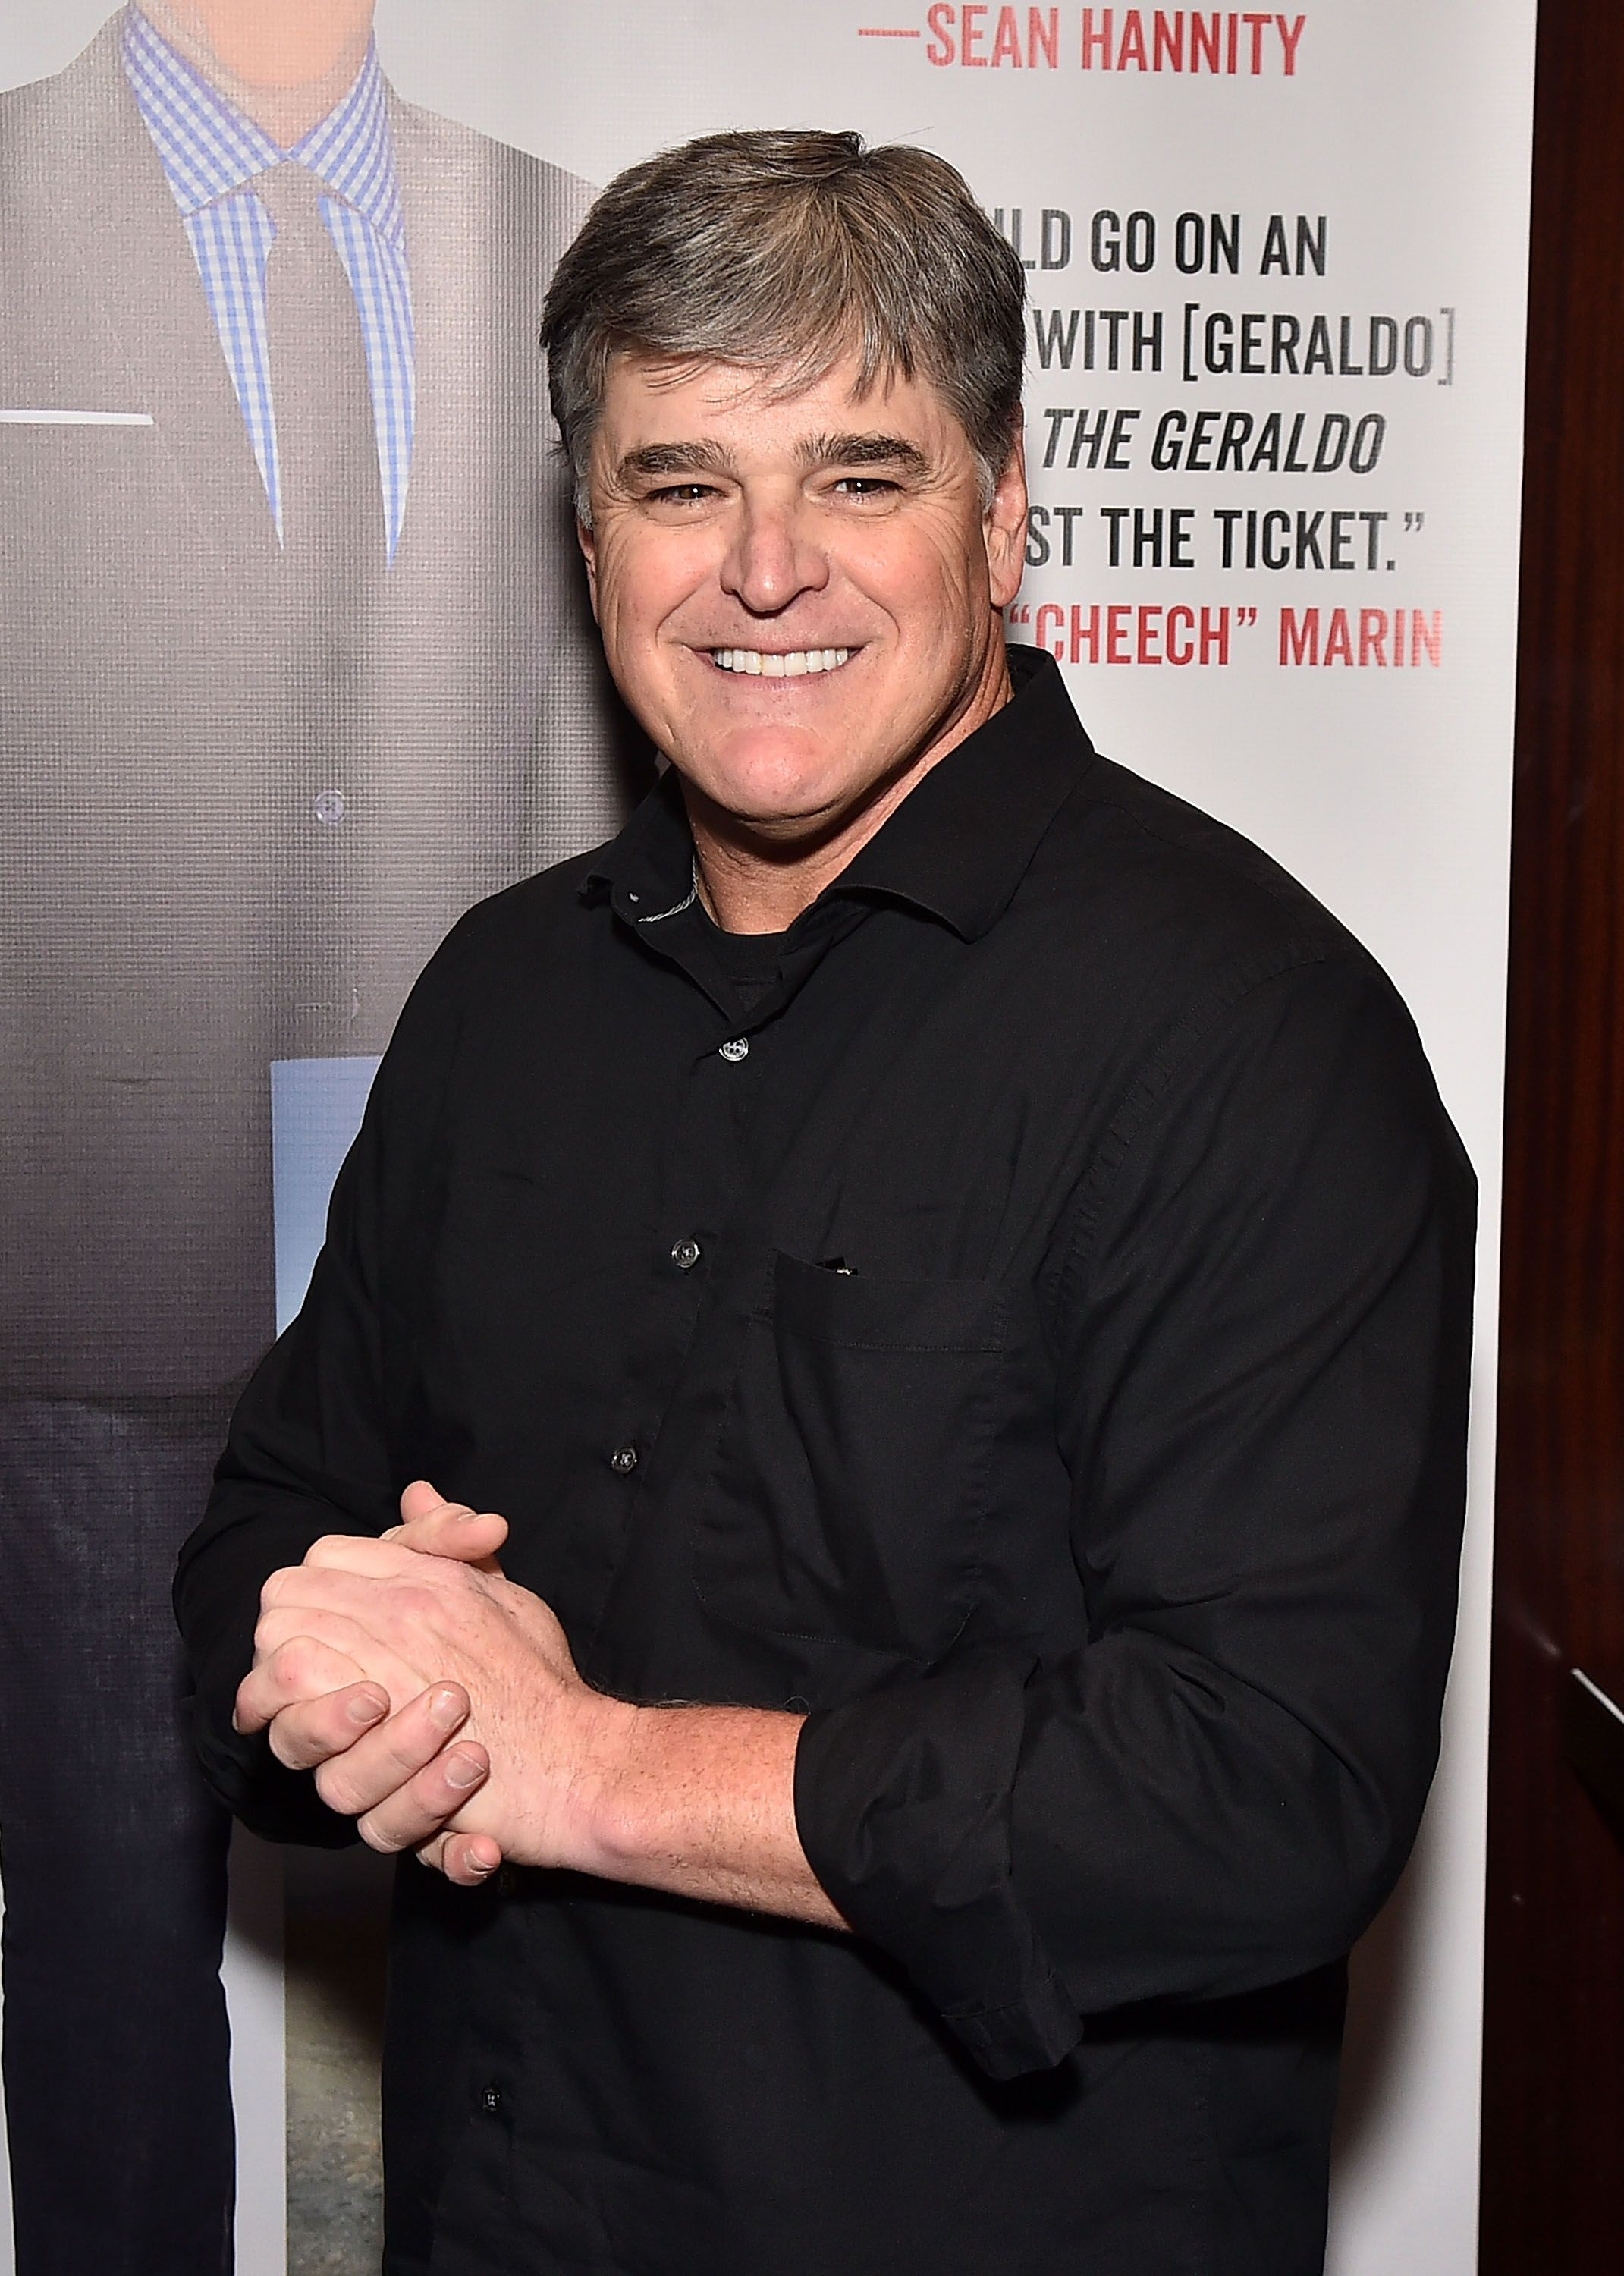 """Sean Hannity in attendance as Geraldo Rivera Launches His New Book """"The Geraldo Show: A Memoir"""" at Del Frisco's Grille on April 2, 2018 